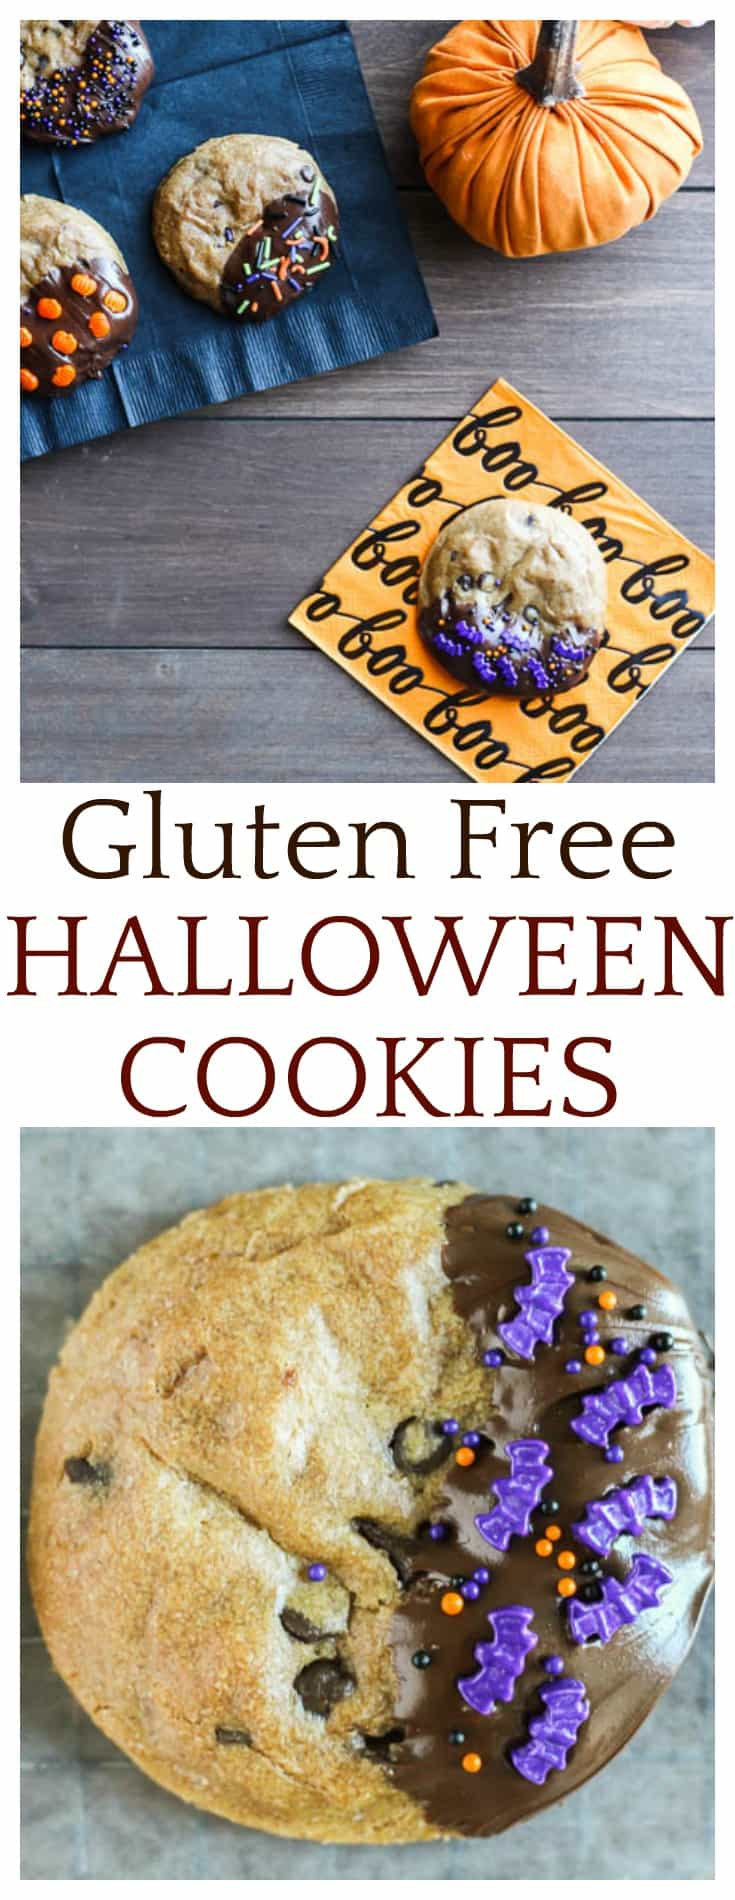 Keep all your ghosts and ghouls happy with these Gluten Free Halloween Cookies! I use Immaculate Baking Company's refrigerated dough so that making these Halloween treats is a snap! Who doesn't love fresh baked cookies?